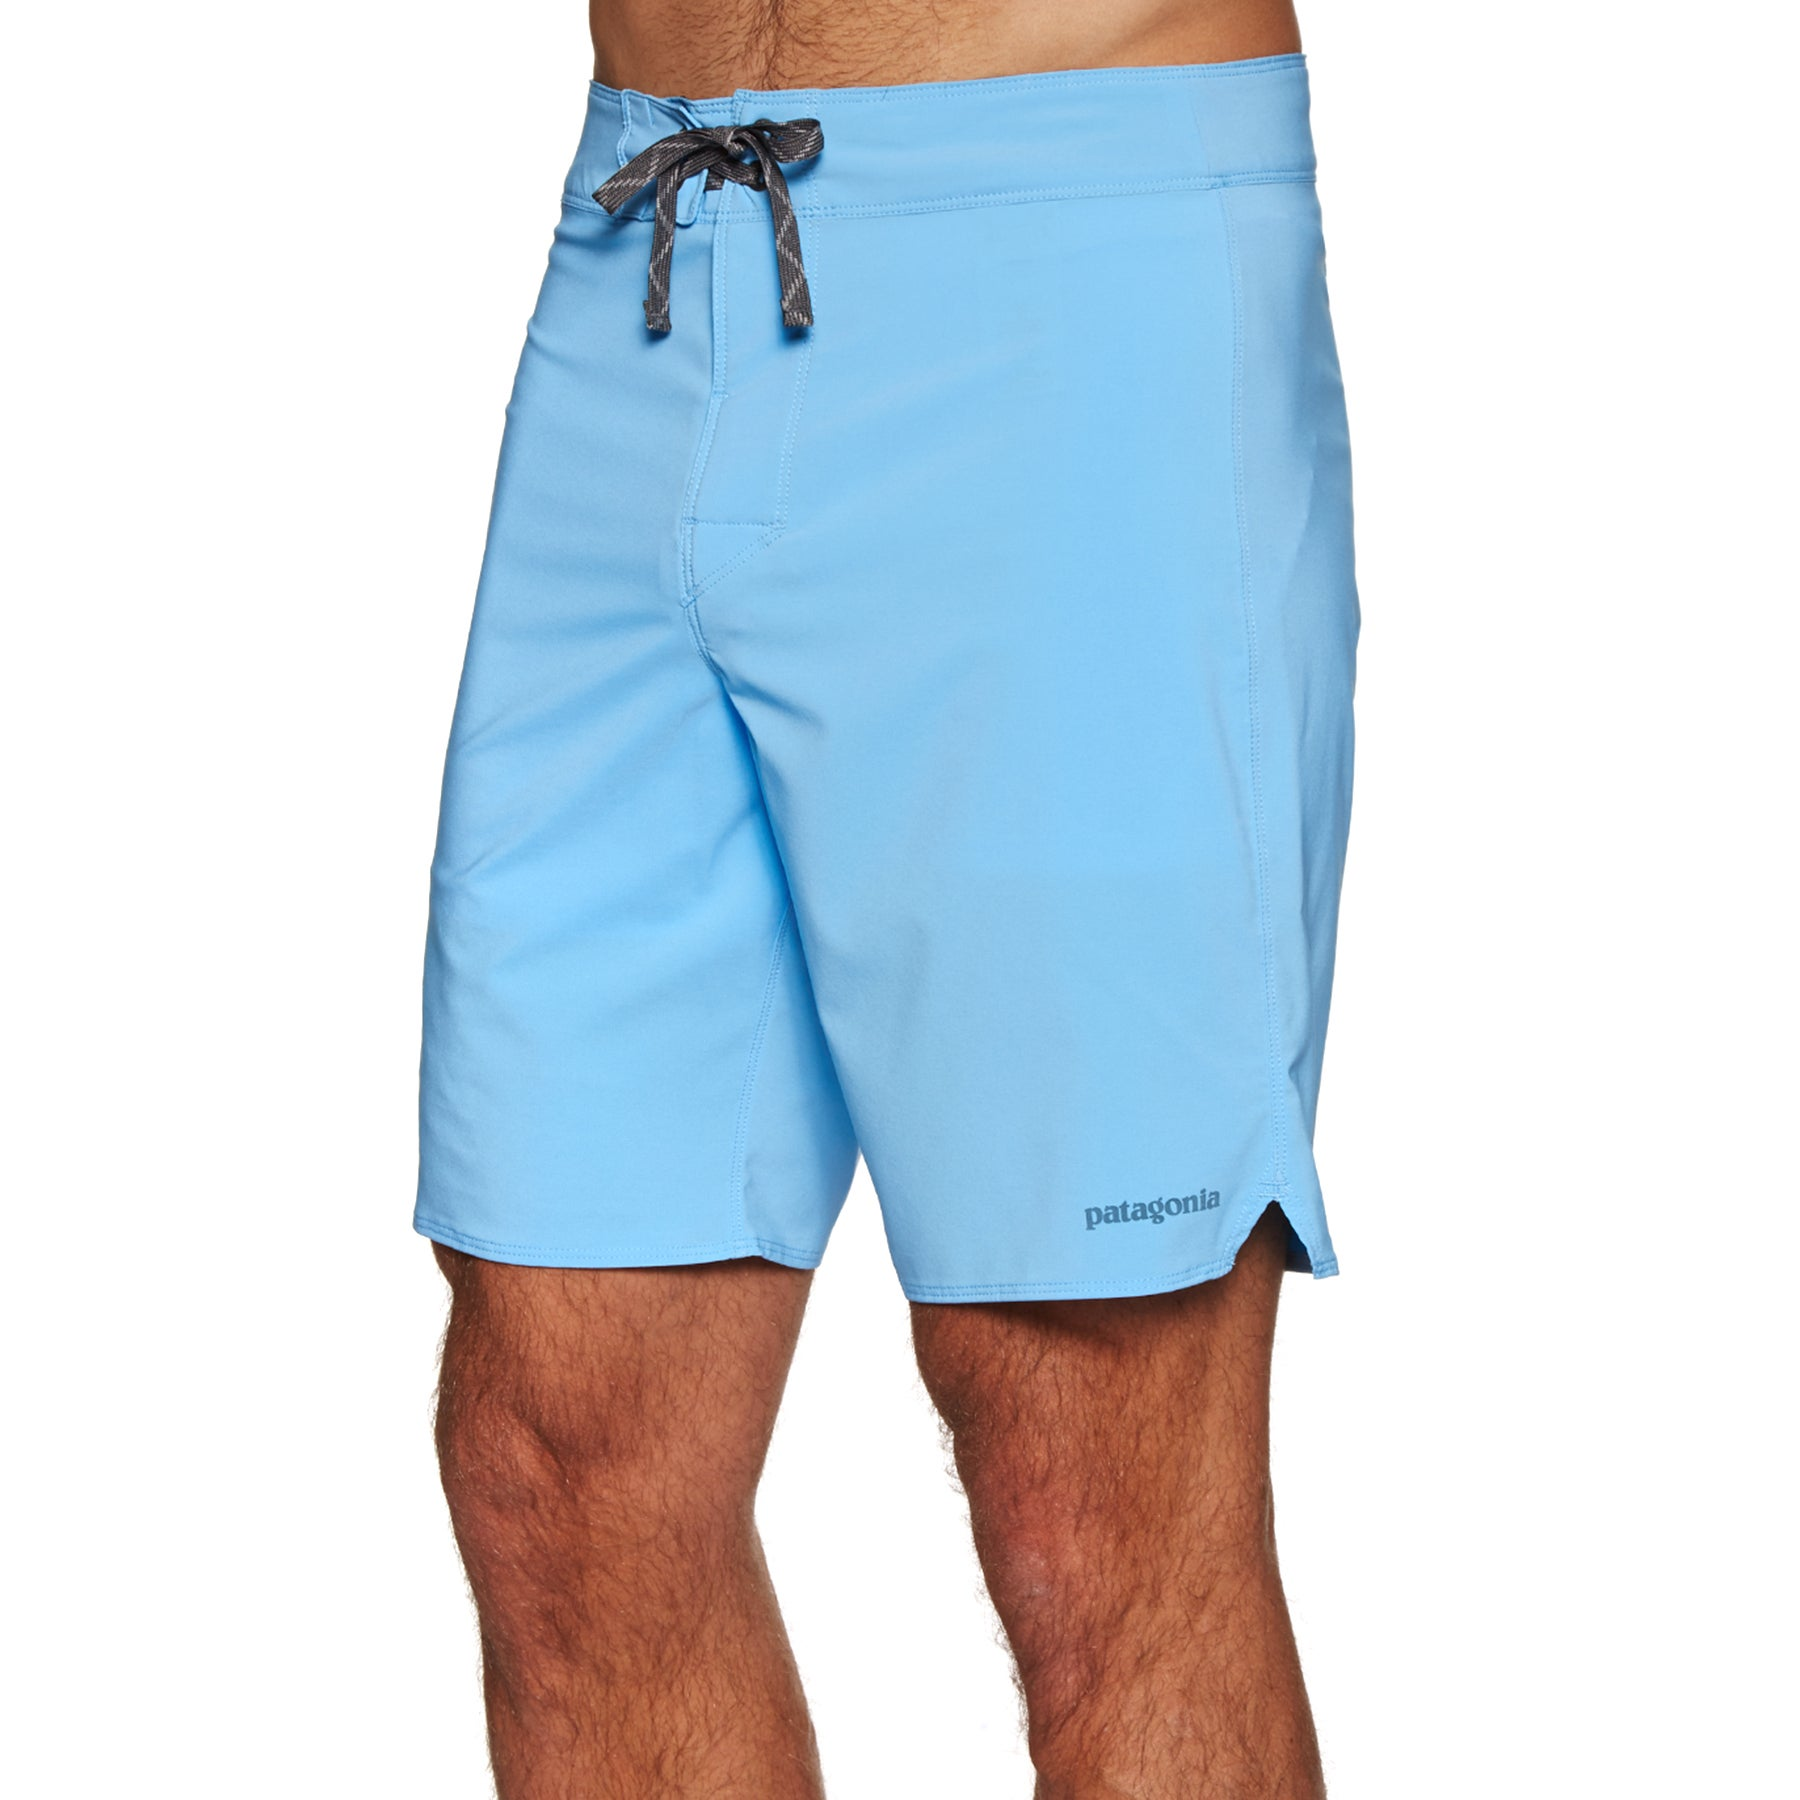 Patagonia Stretch Hydropeak 18 In Boardshorts - Break Up Blue